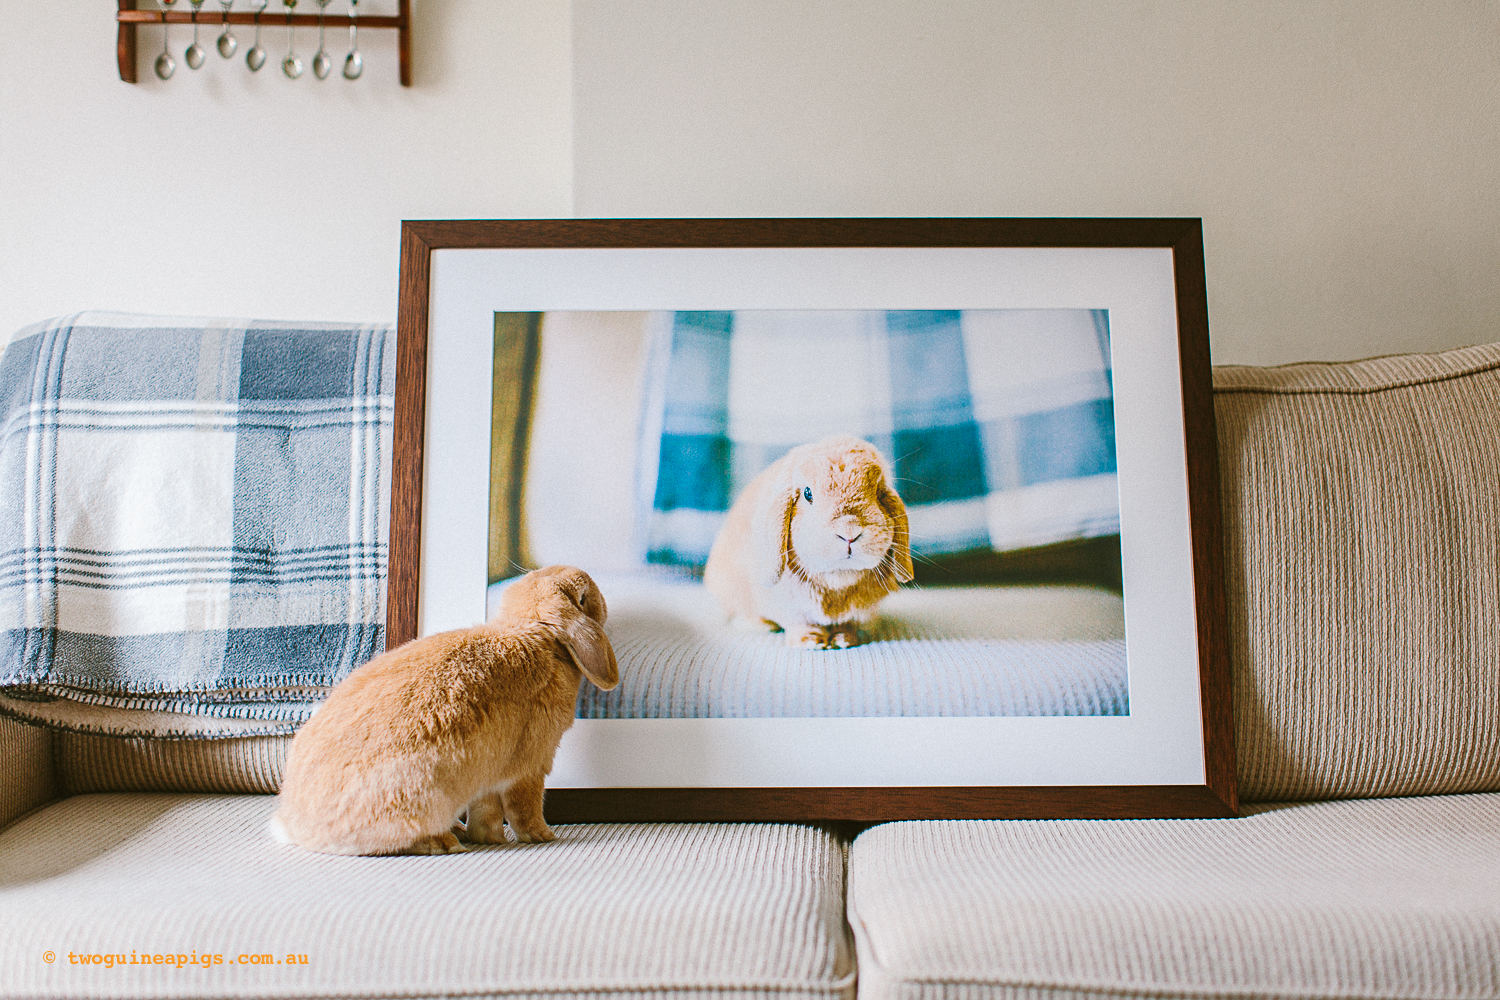 twoguineapigs_pet_photography_waffle_lop_eared_bunny_mcdolands_wallart_1500-2.jpg